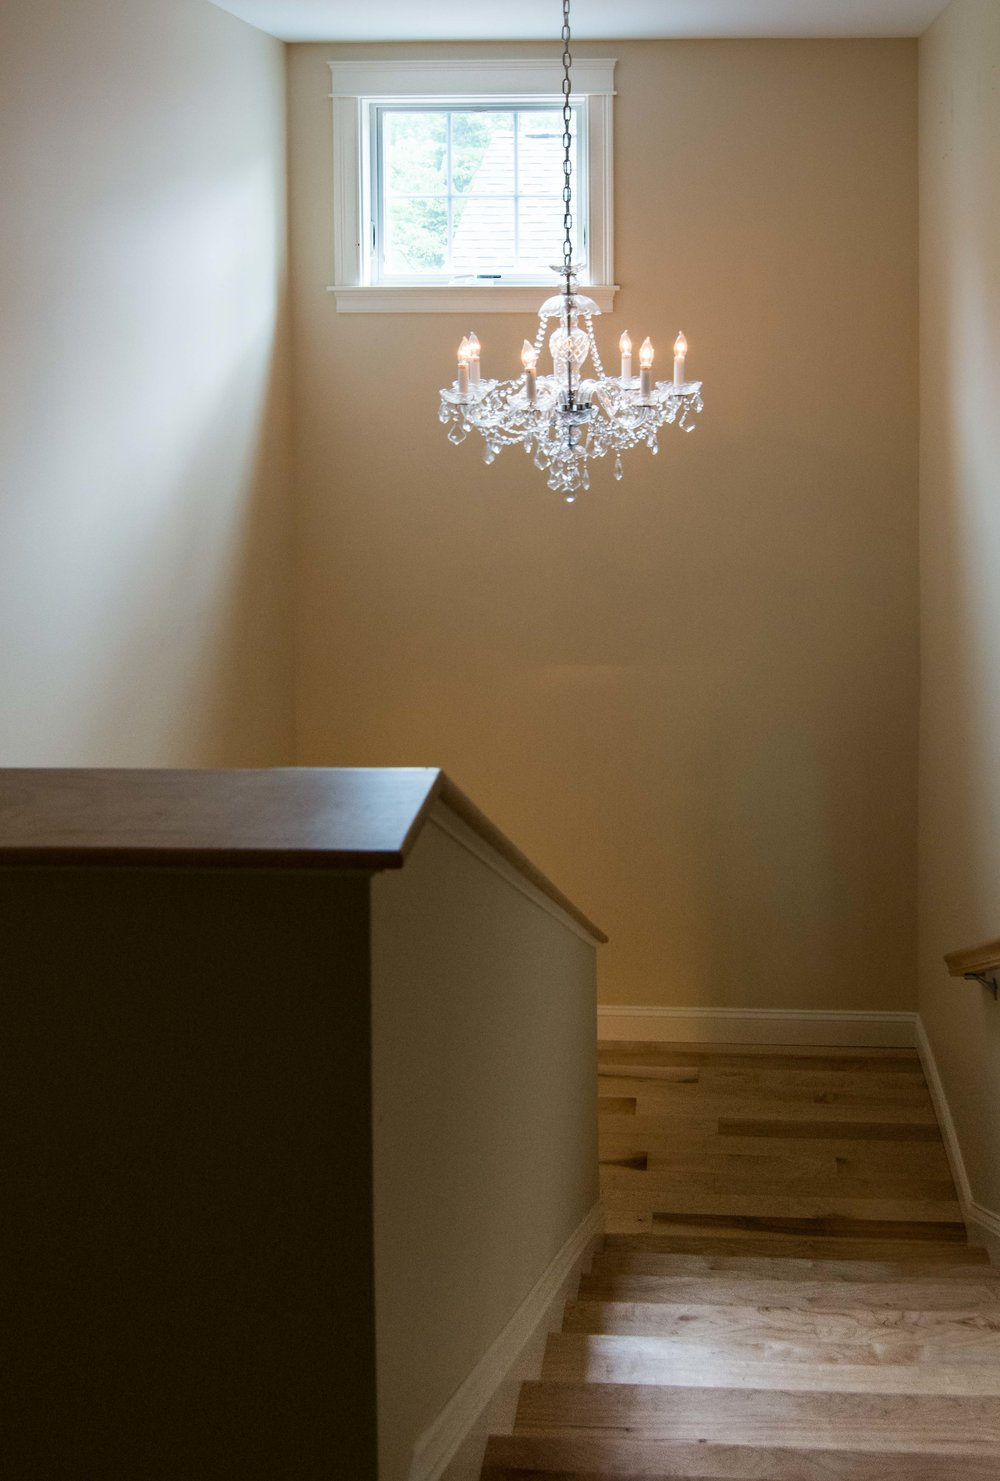 Stroudwater Cape, Portland, Maine, Stairs with Chandelier